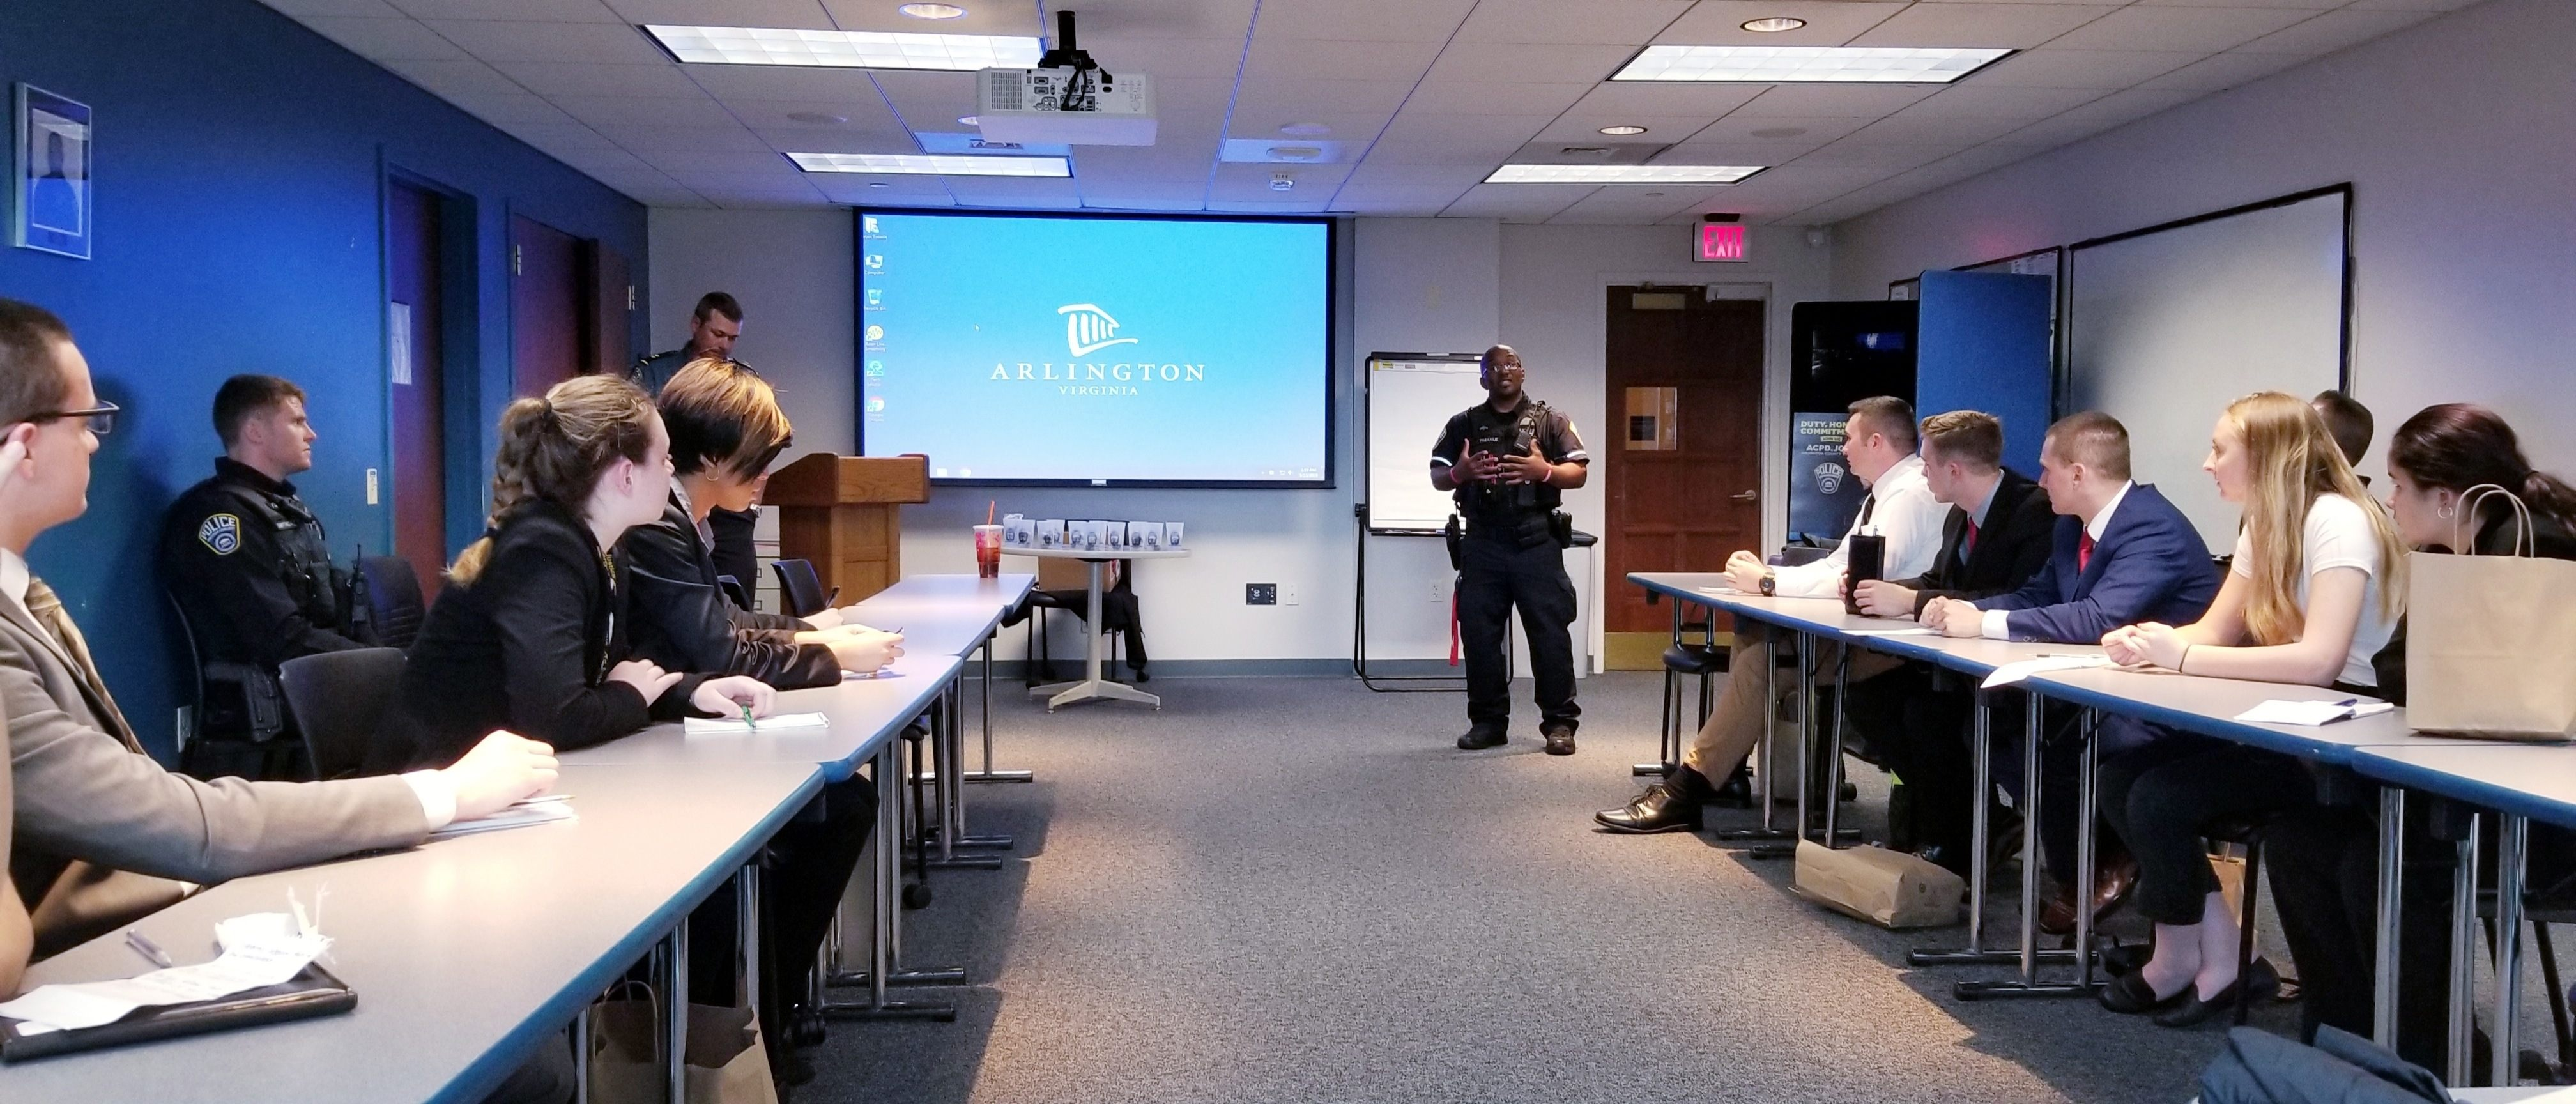 Police officer speaking to college students in a boardroom